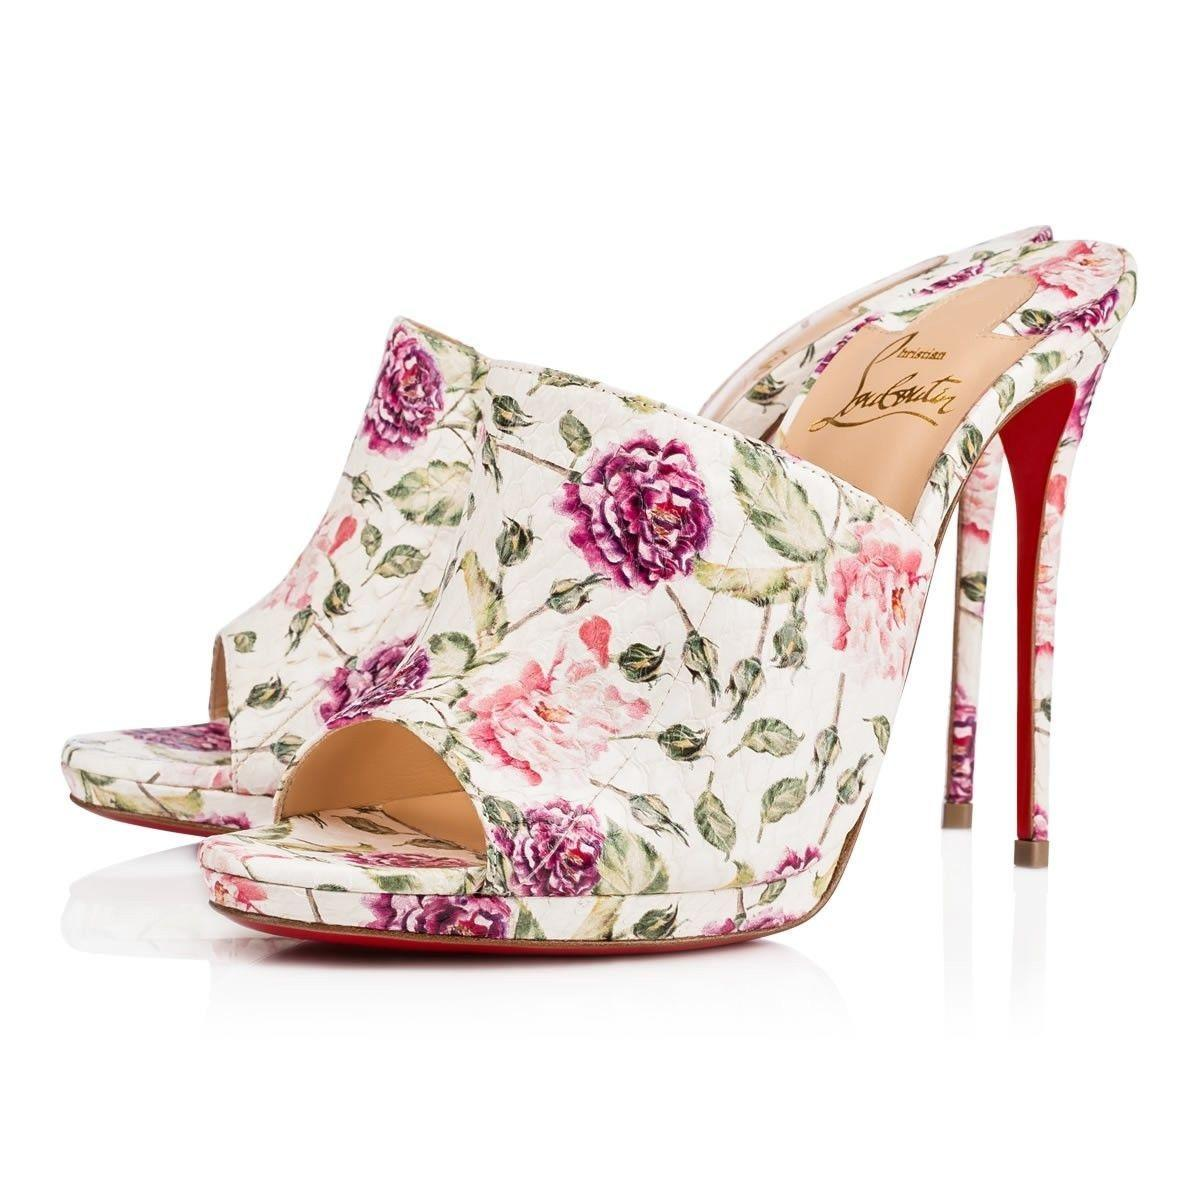 Christian Louboutin White Pigamule 120 Pink Floral Snakeskin Backless Mule Sandal Heel Pumps Size EU 39.5 (Approx. US 9.5) Regular (M, B)